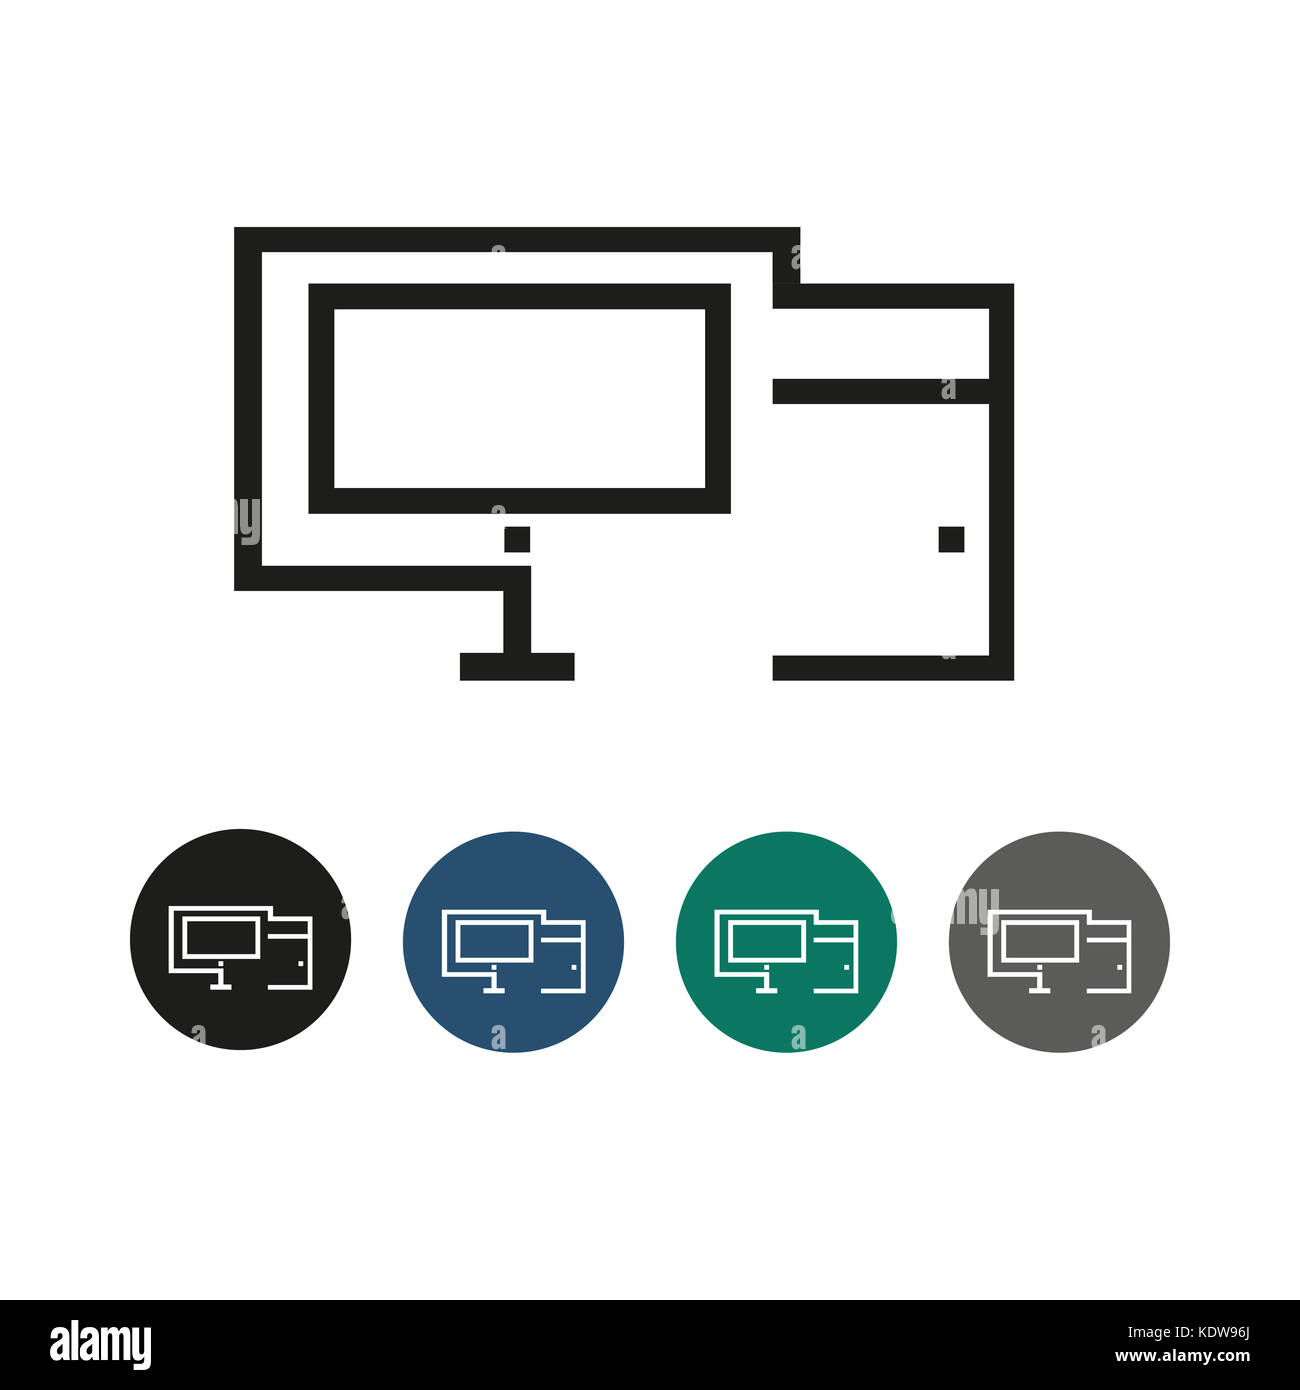 PC Desktop Outline Graphic Illustration - Stock Image